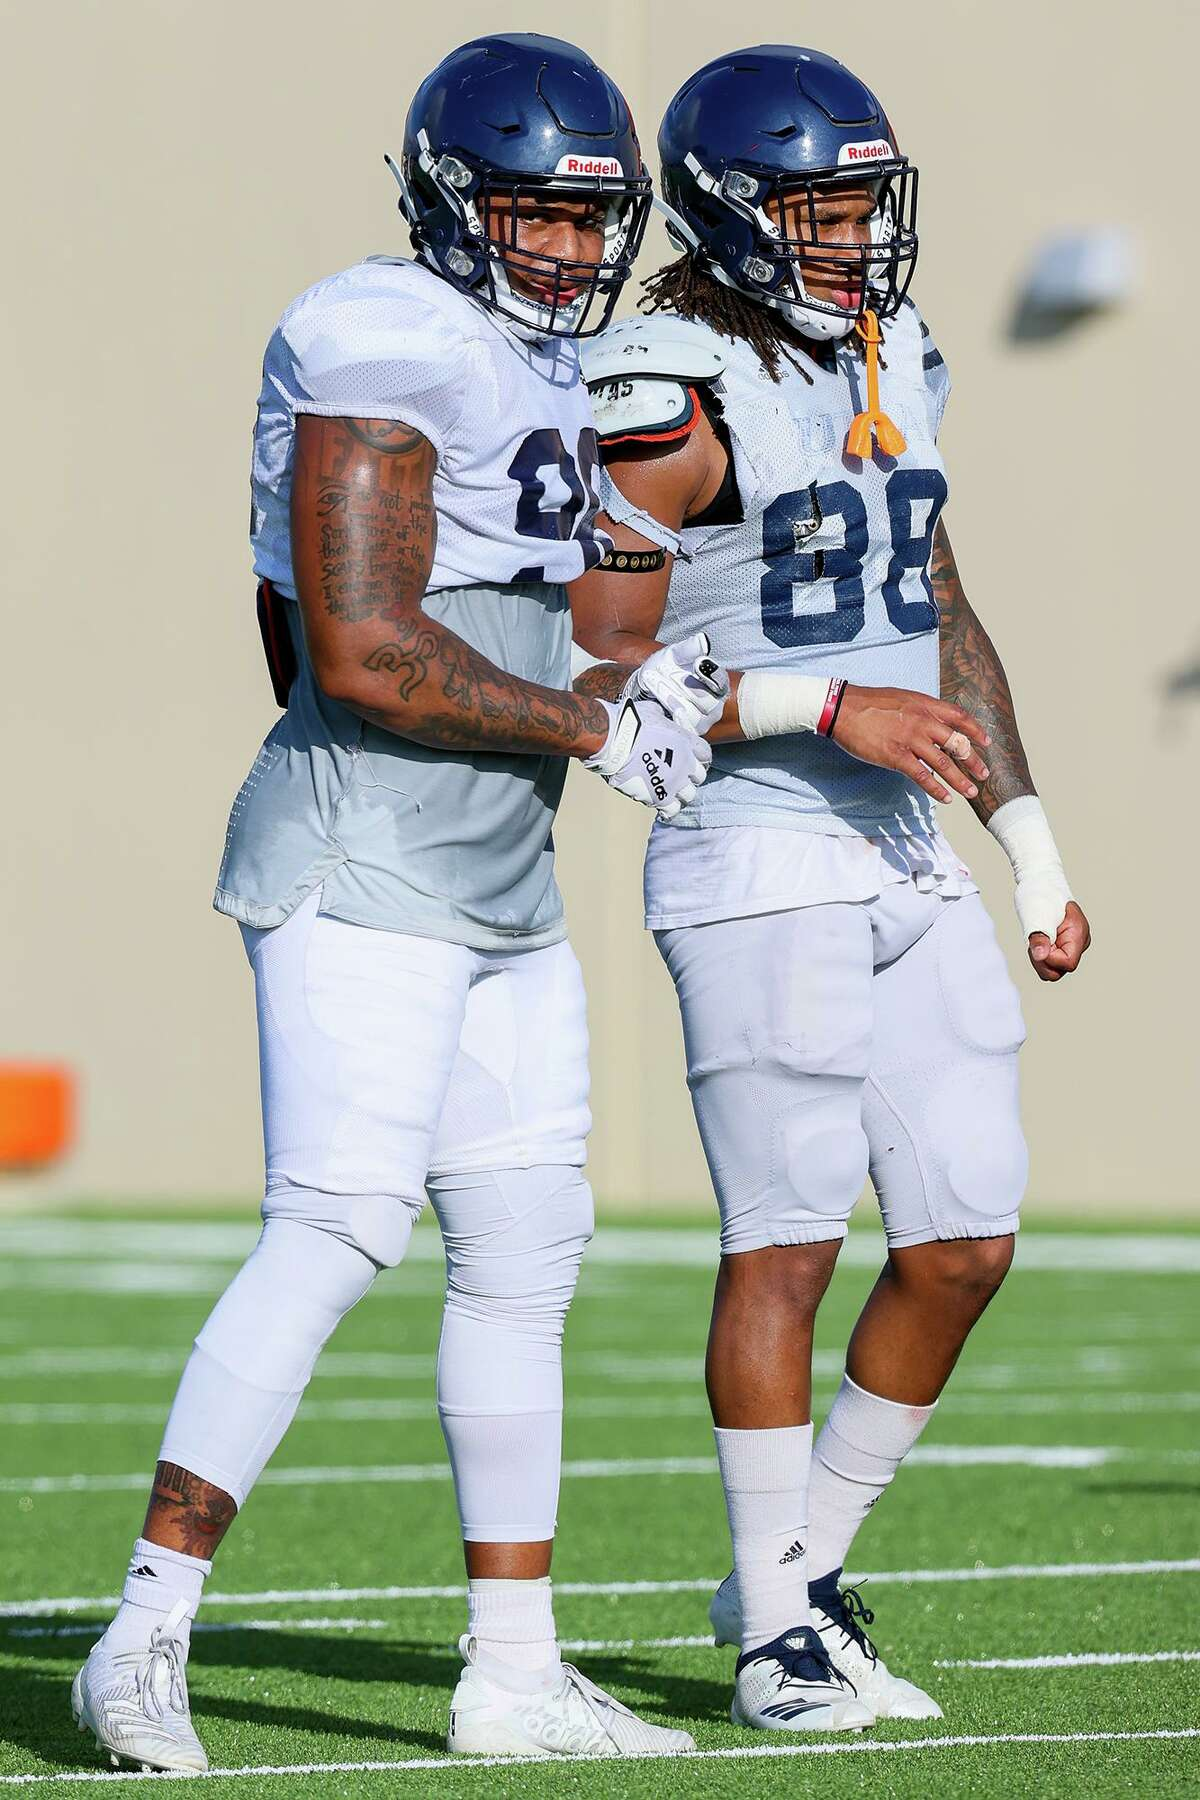 UTSA linebackers Charles Wiley, left, and Jamal Ligon during a morning football practice at the practice fields of the RACE facility on Thursday, Aug. 12, 2021.